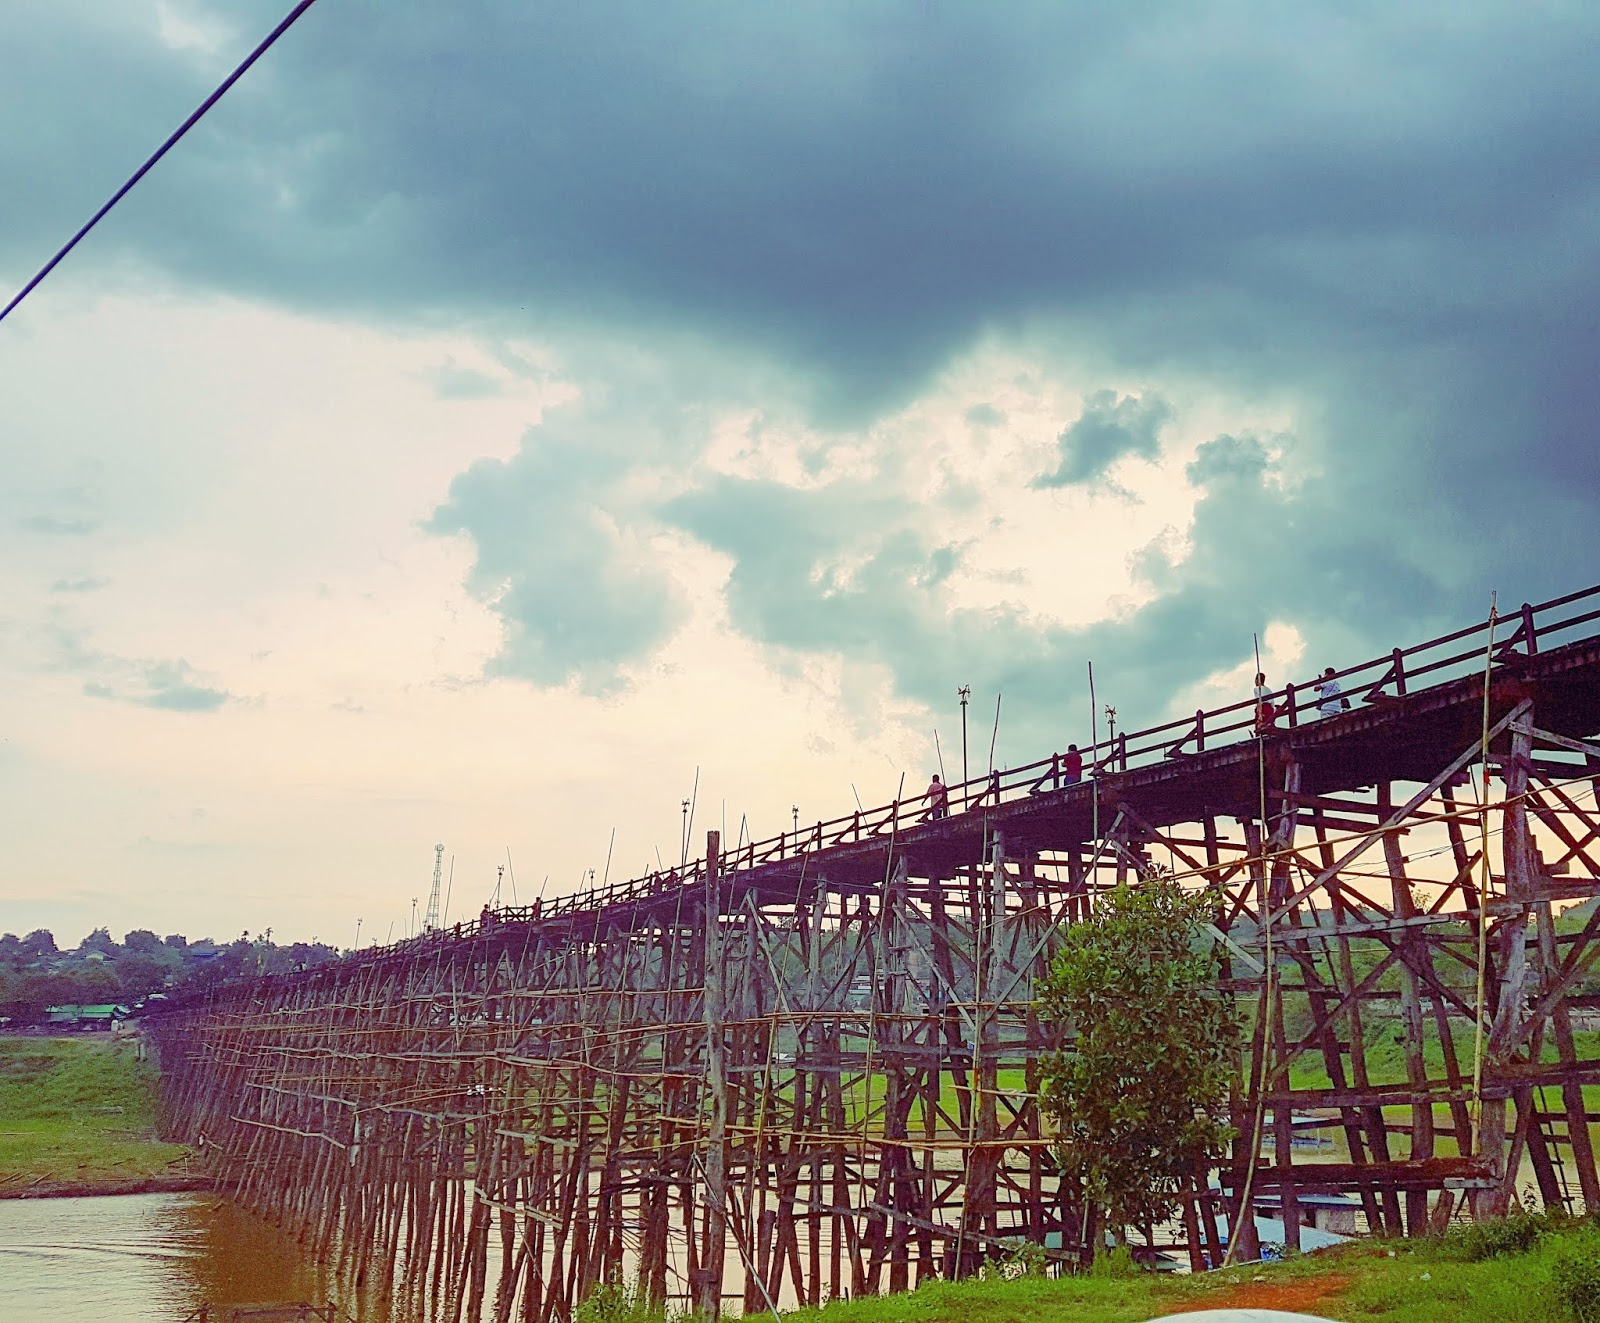 Sangkhlaburi wooden bridge - volunteering at an animal shelter in Thailand - Ummi Goes Where?